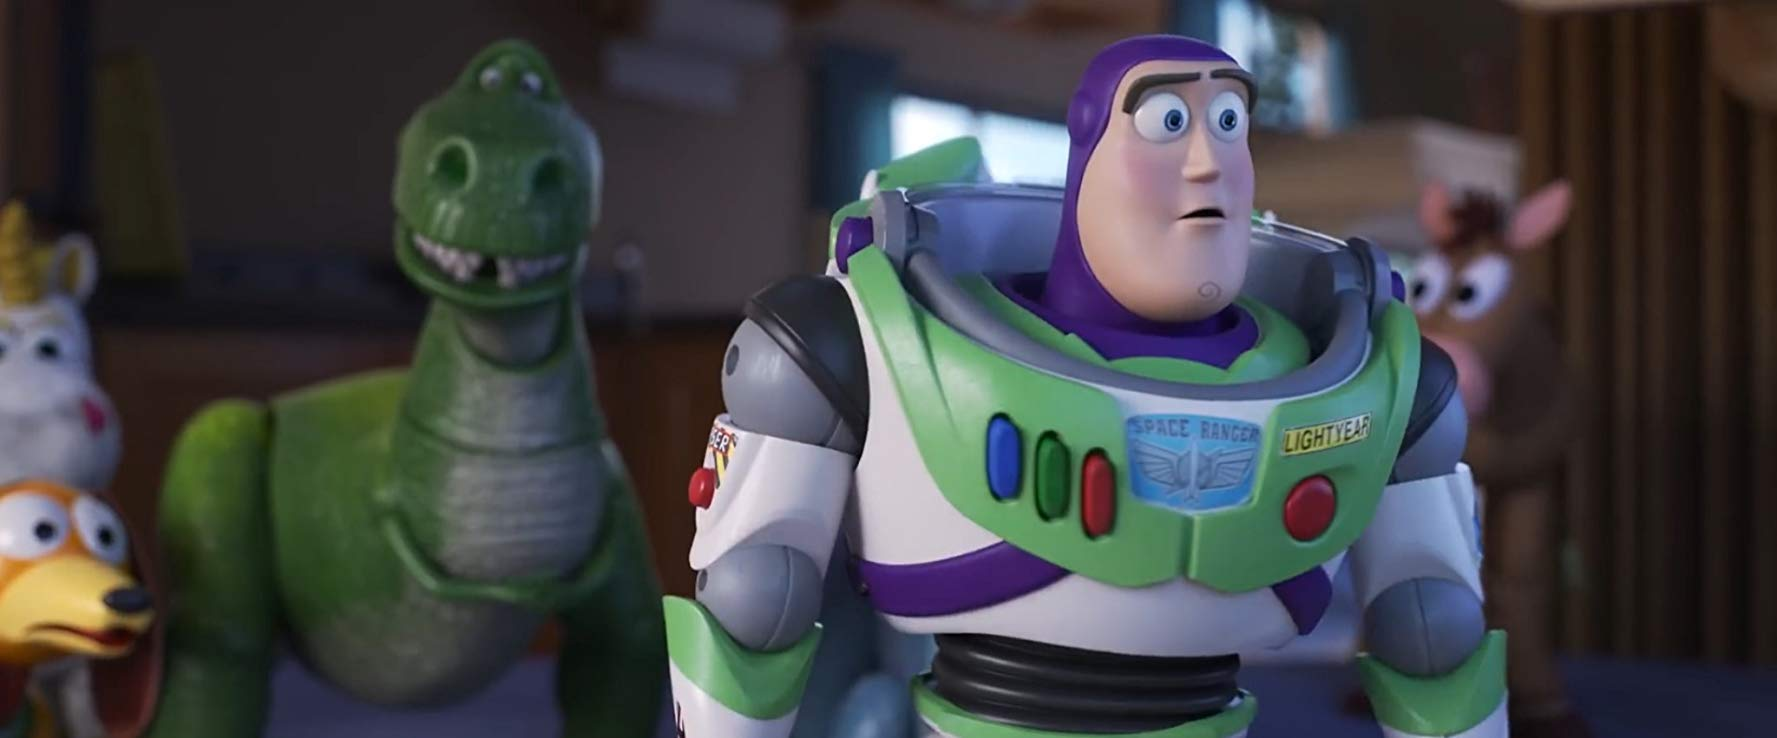 "Tim Allen in <a href=""https://entertainment.ie/cinema/movie-reviews/toy-story-4-394195/"">Toy Story 4</a>"